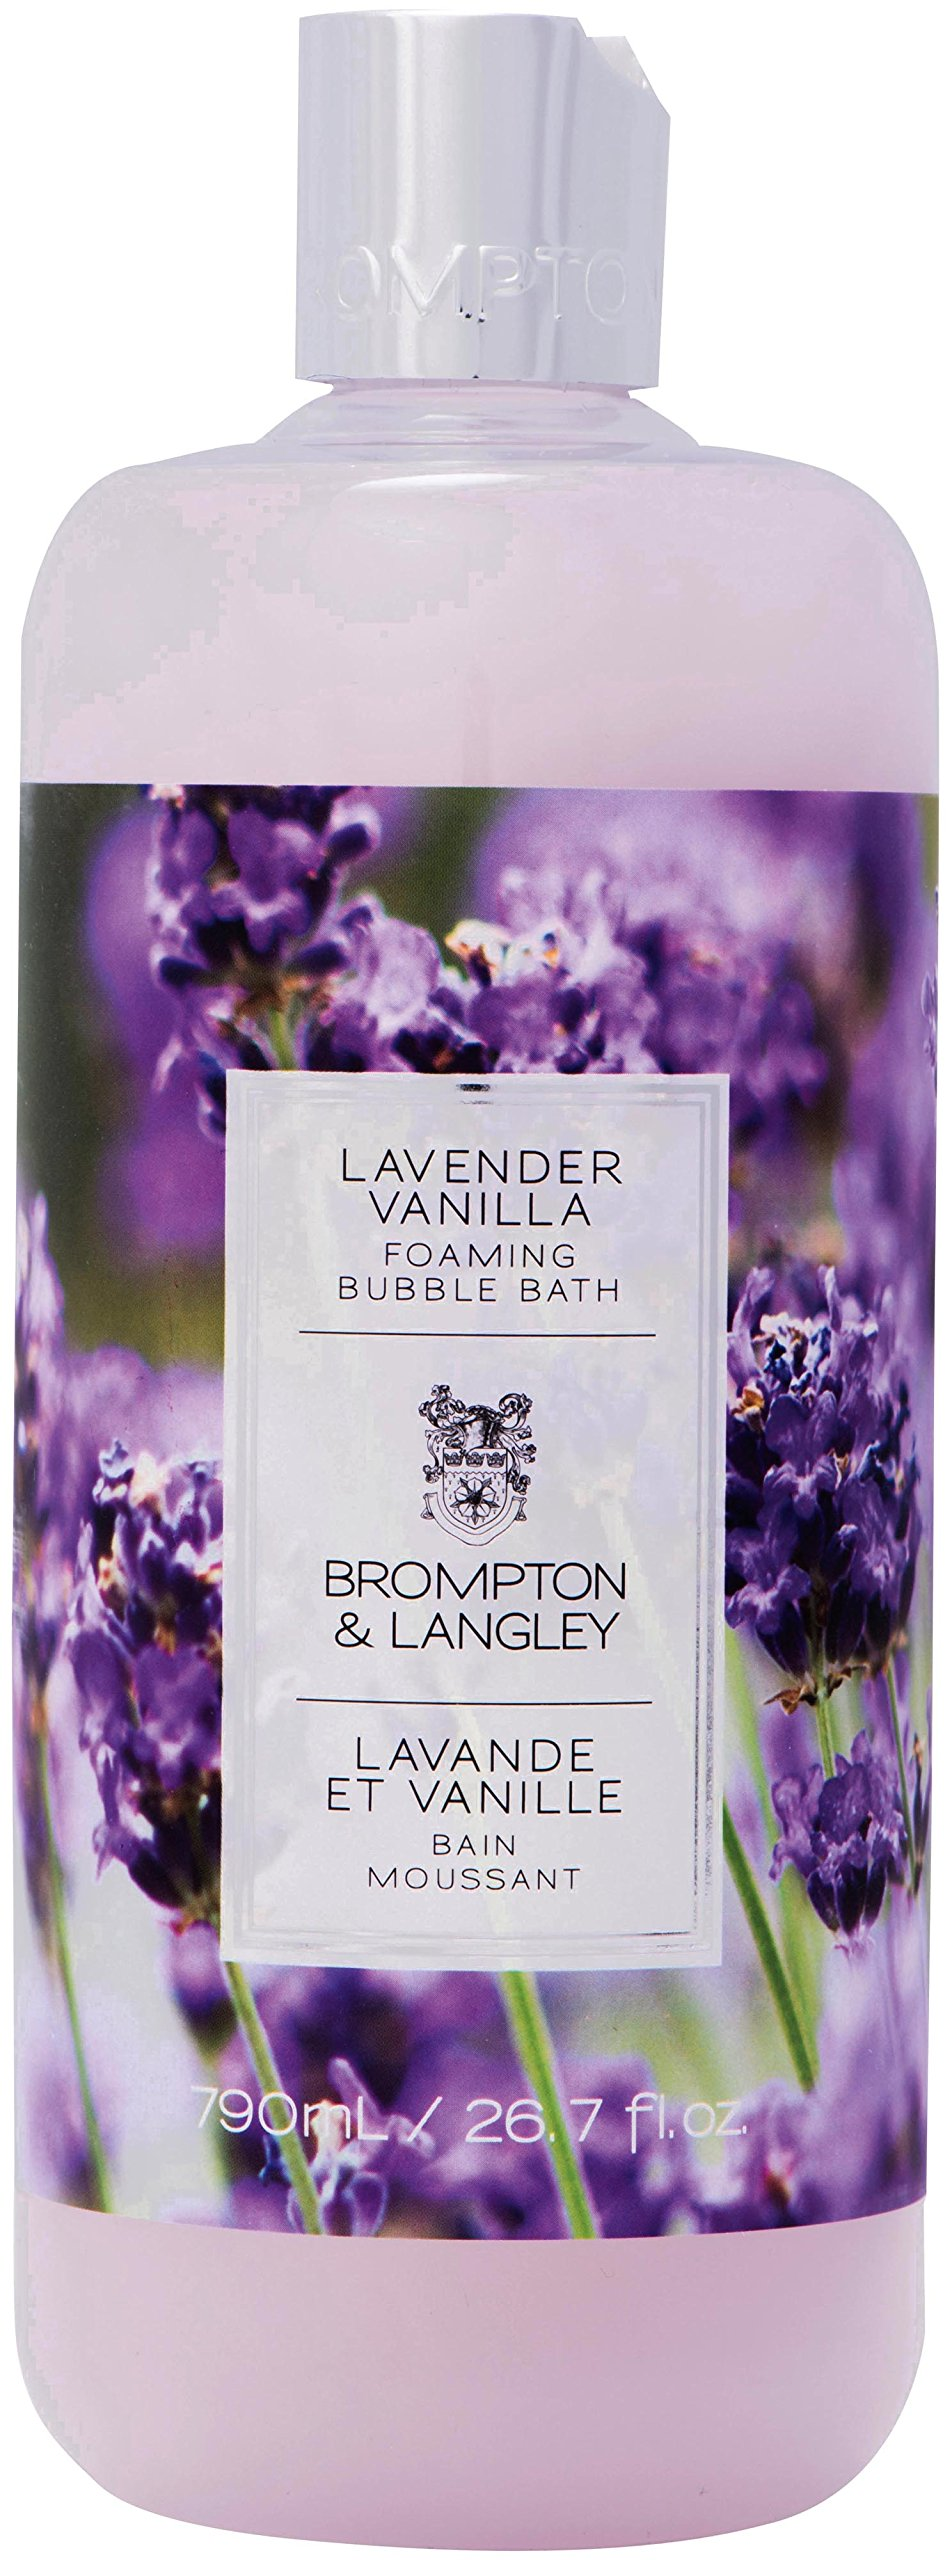 Brompton & Langley Foaming Bubble Bath, Lavender Vanilla